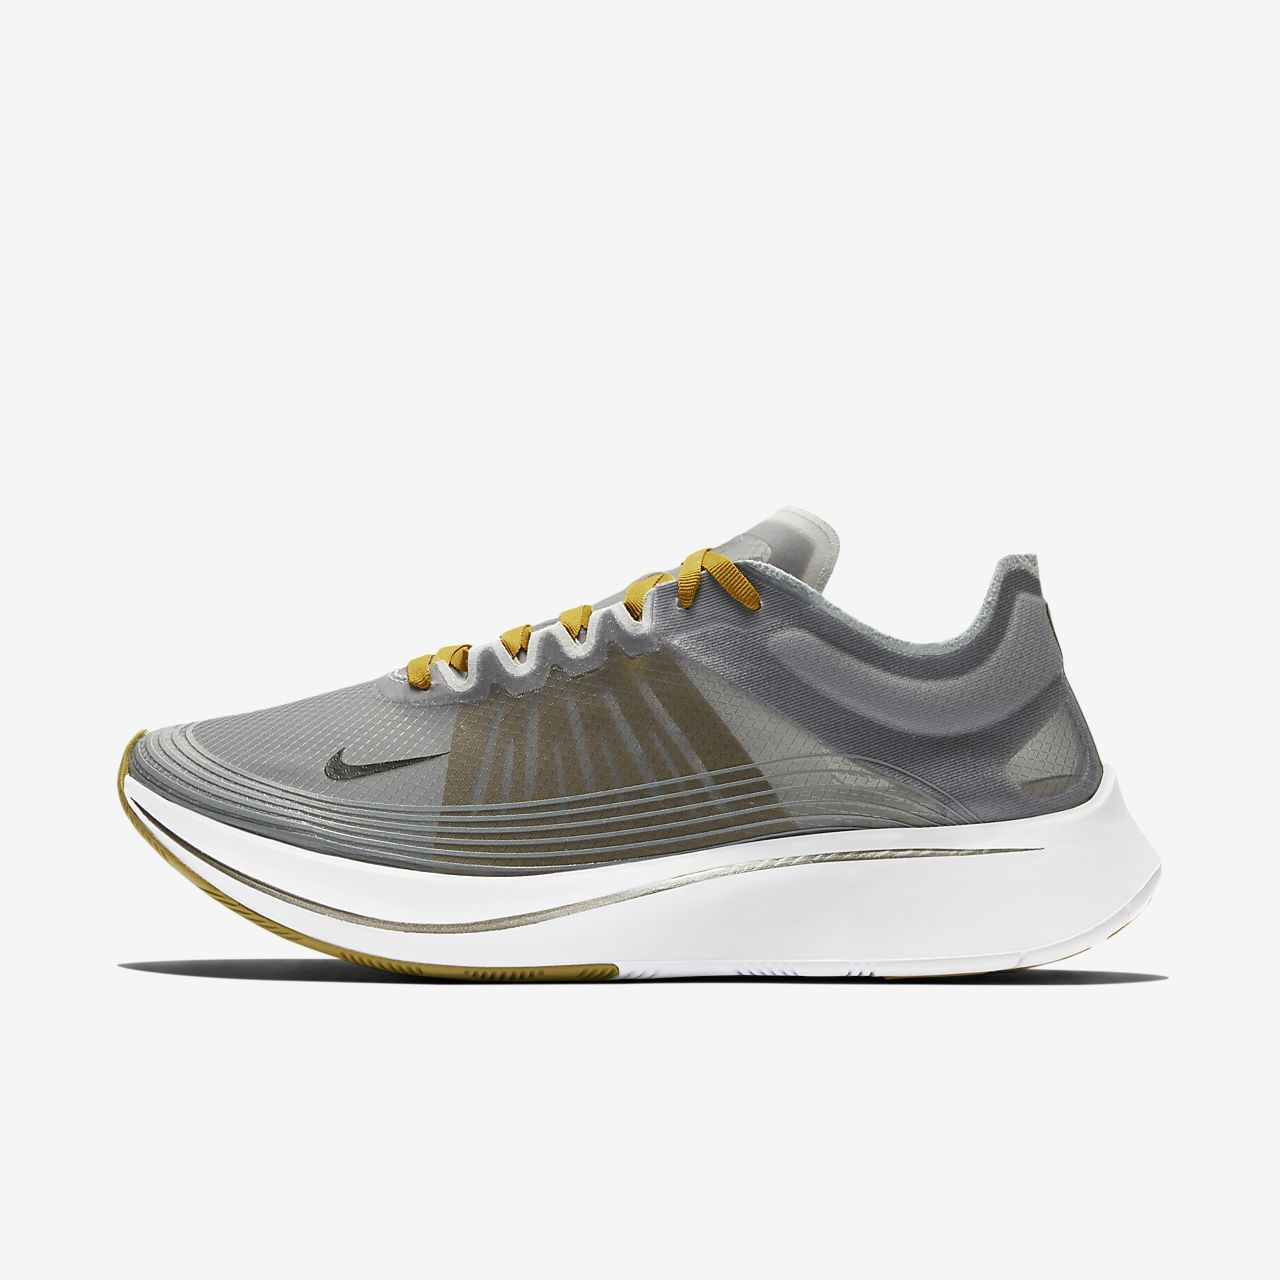 ecc41accfa46c Nike Zoom Fly SP Running Shoe. Nike.com